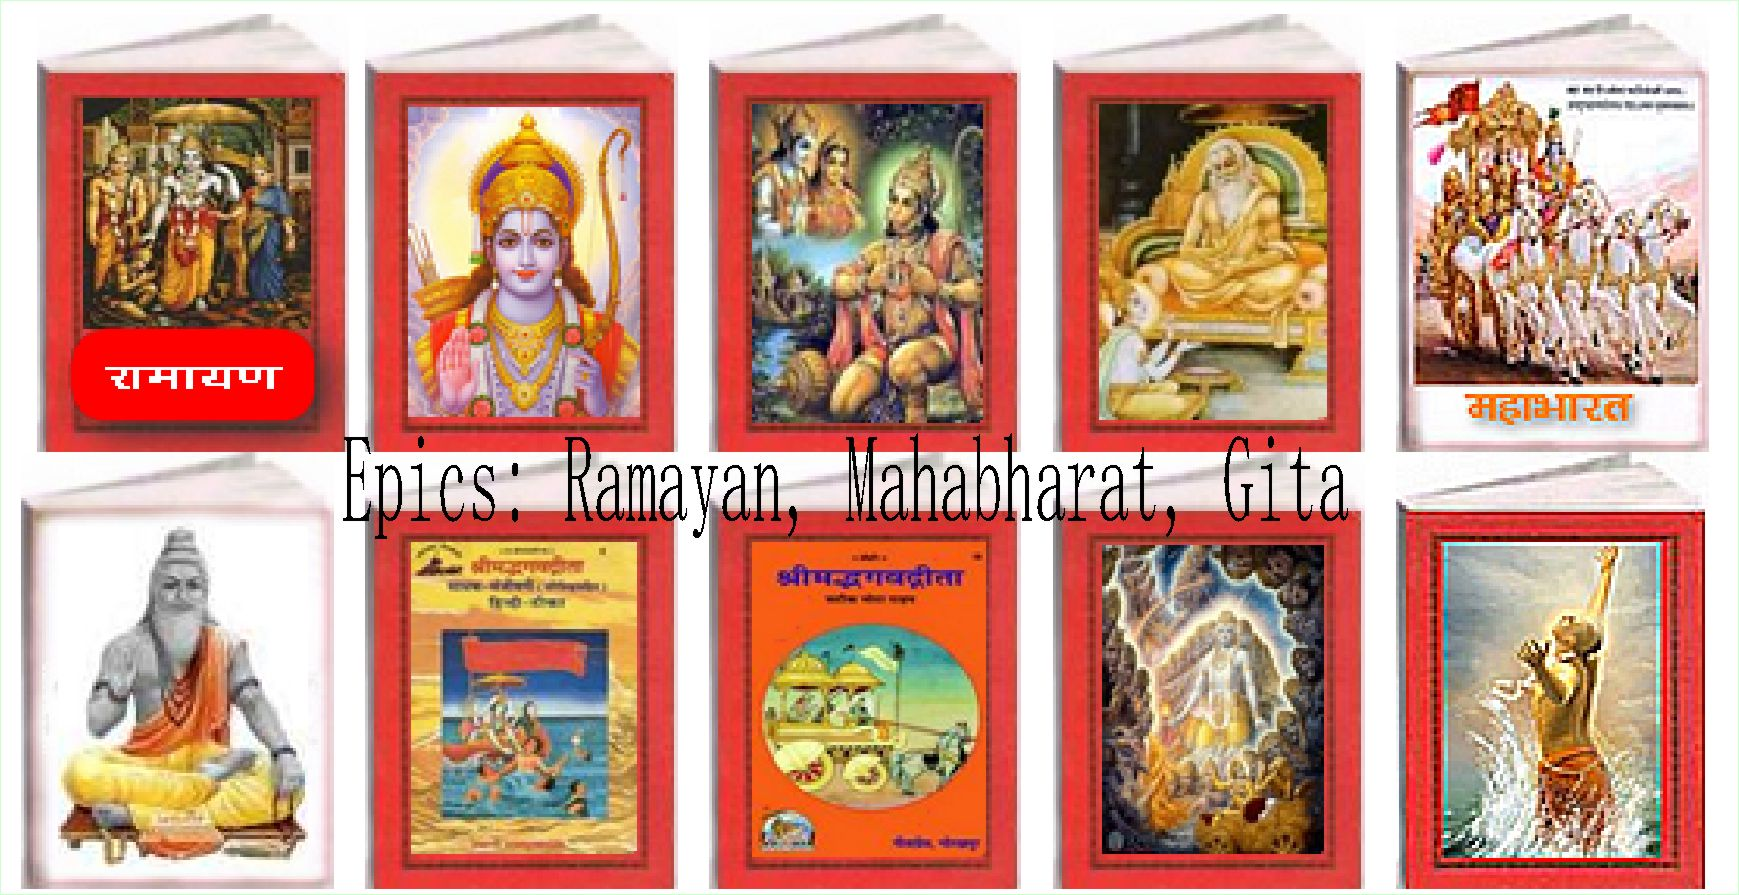 Chaturpata Atharvan Ved : Religious Spiritual Books Library Section